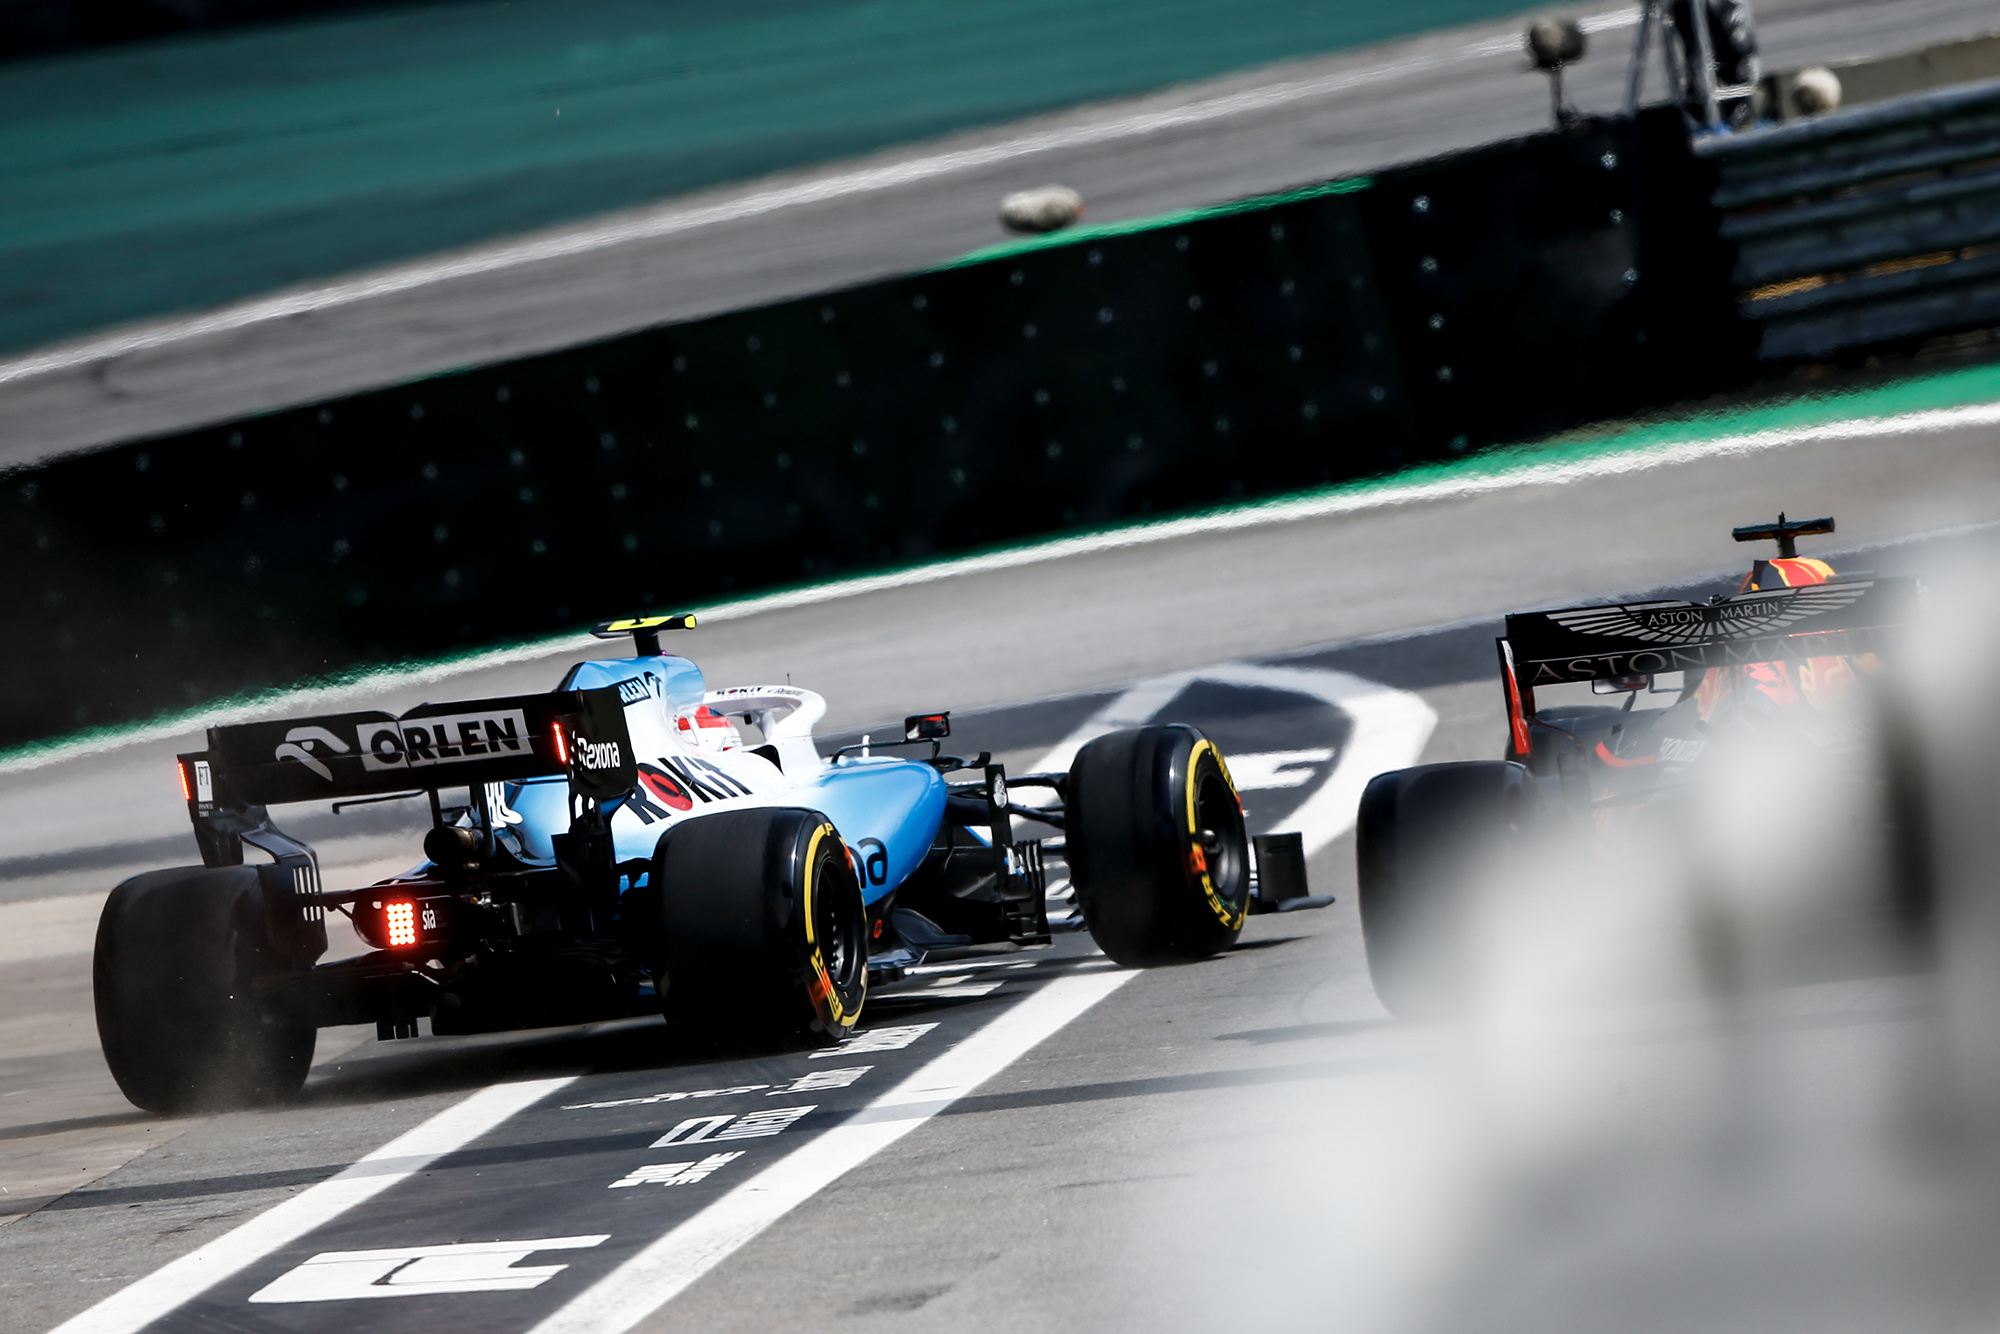 Kubica is released ahead of Verstappen in the pits during the 2019 Brazilian Grand Prix